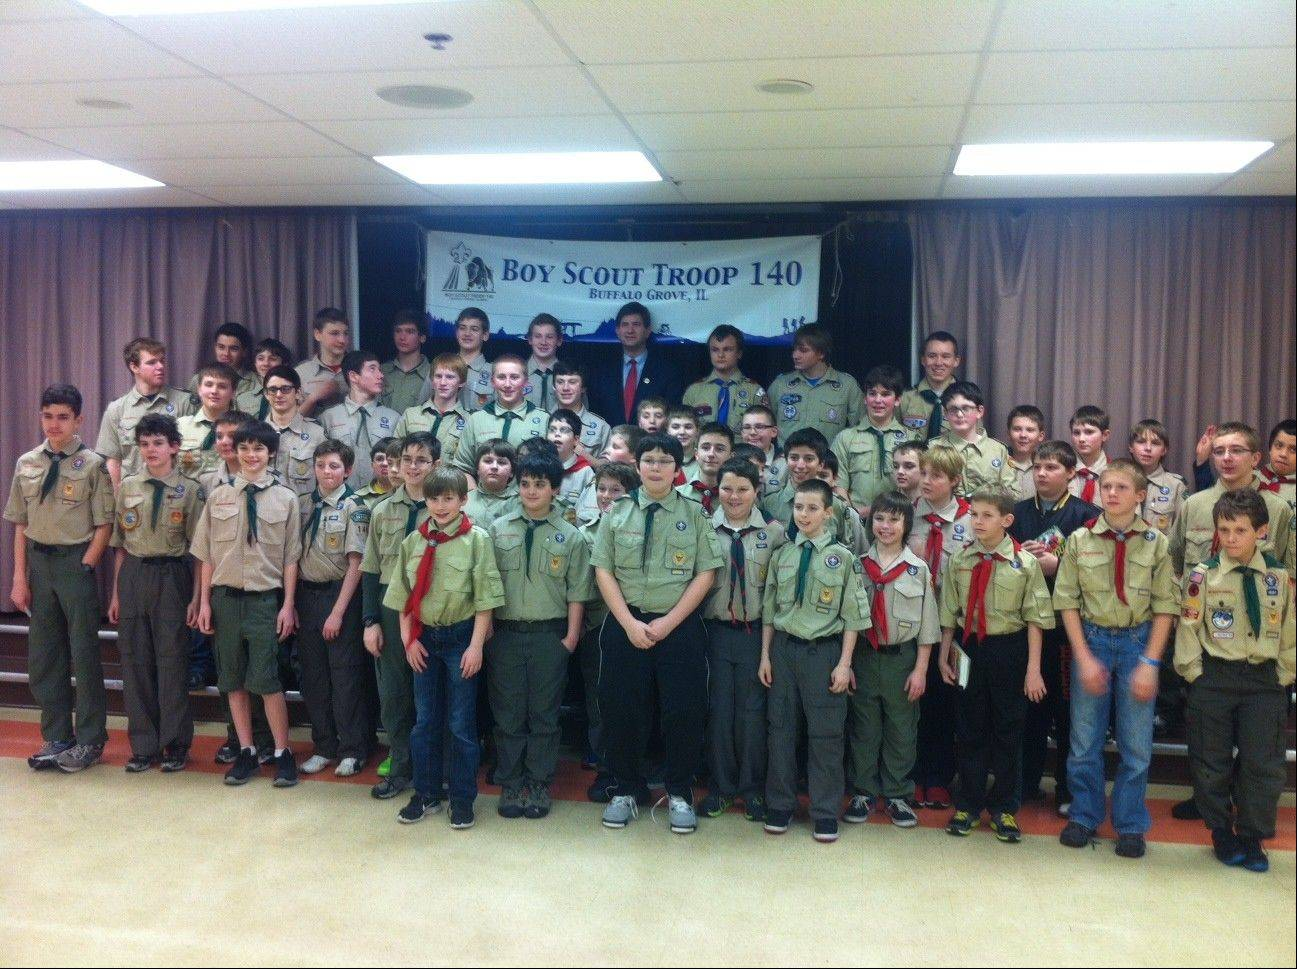 The Scouts of Boy Scout Troop 140 will celebrate the troop�s 50th anniversary this February.